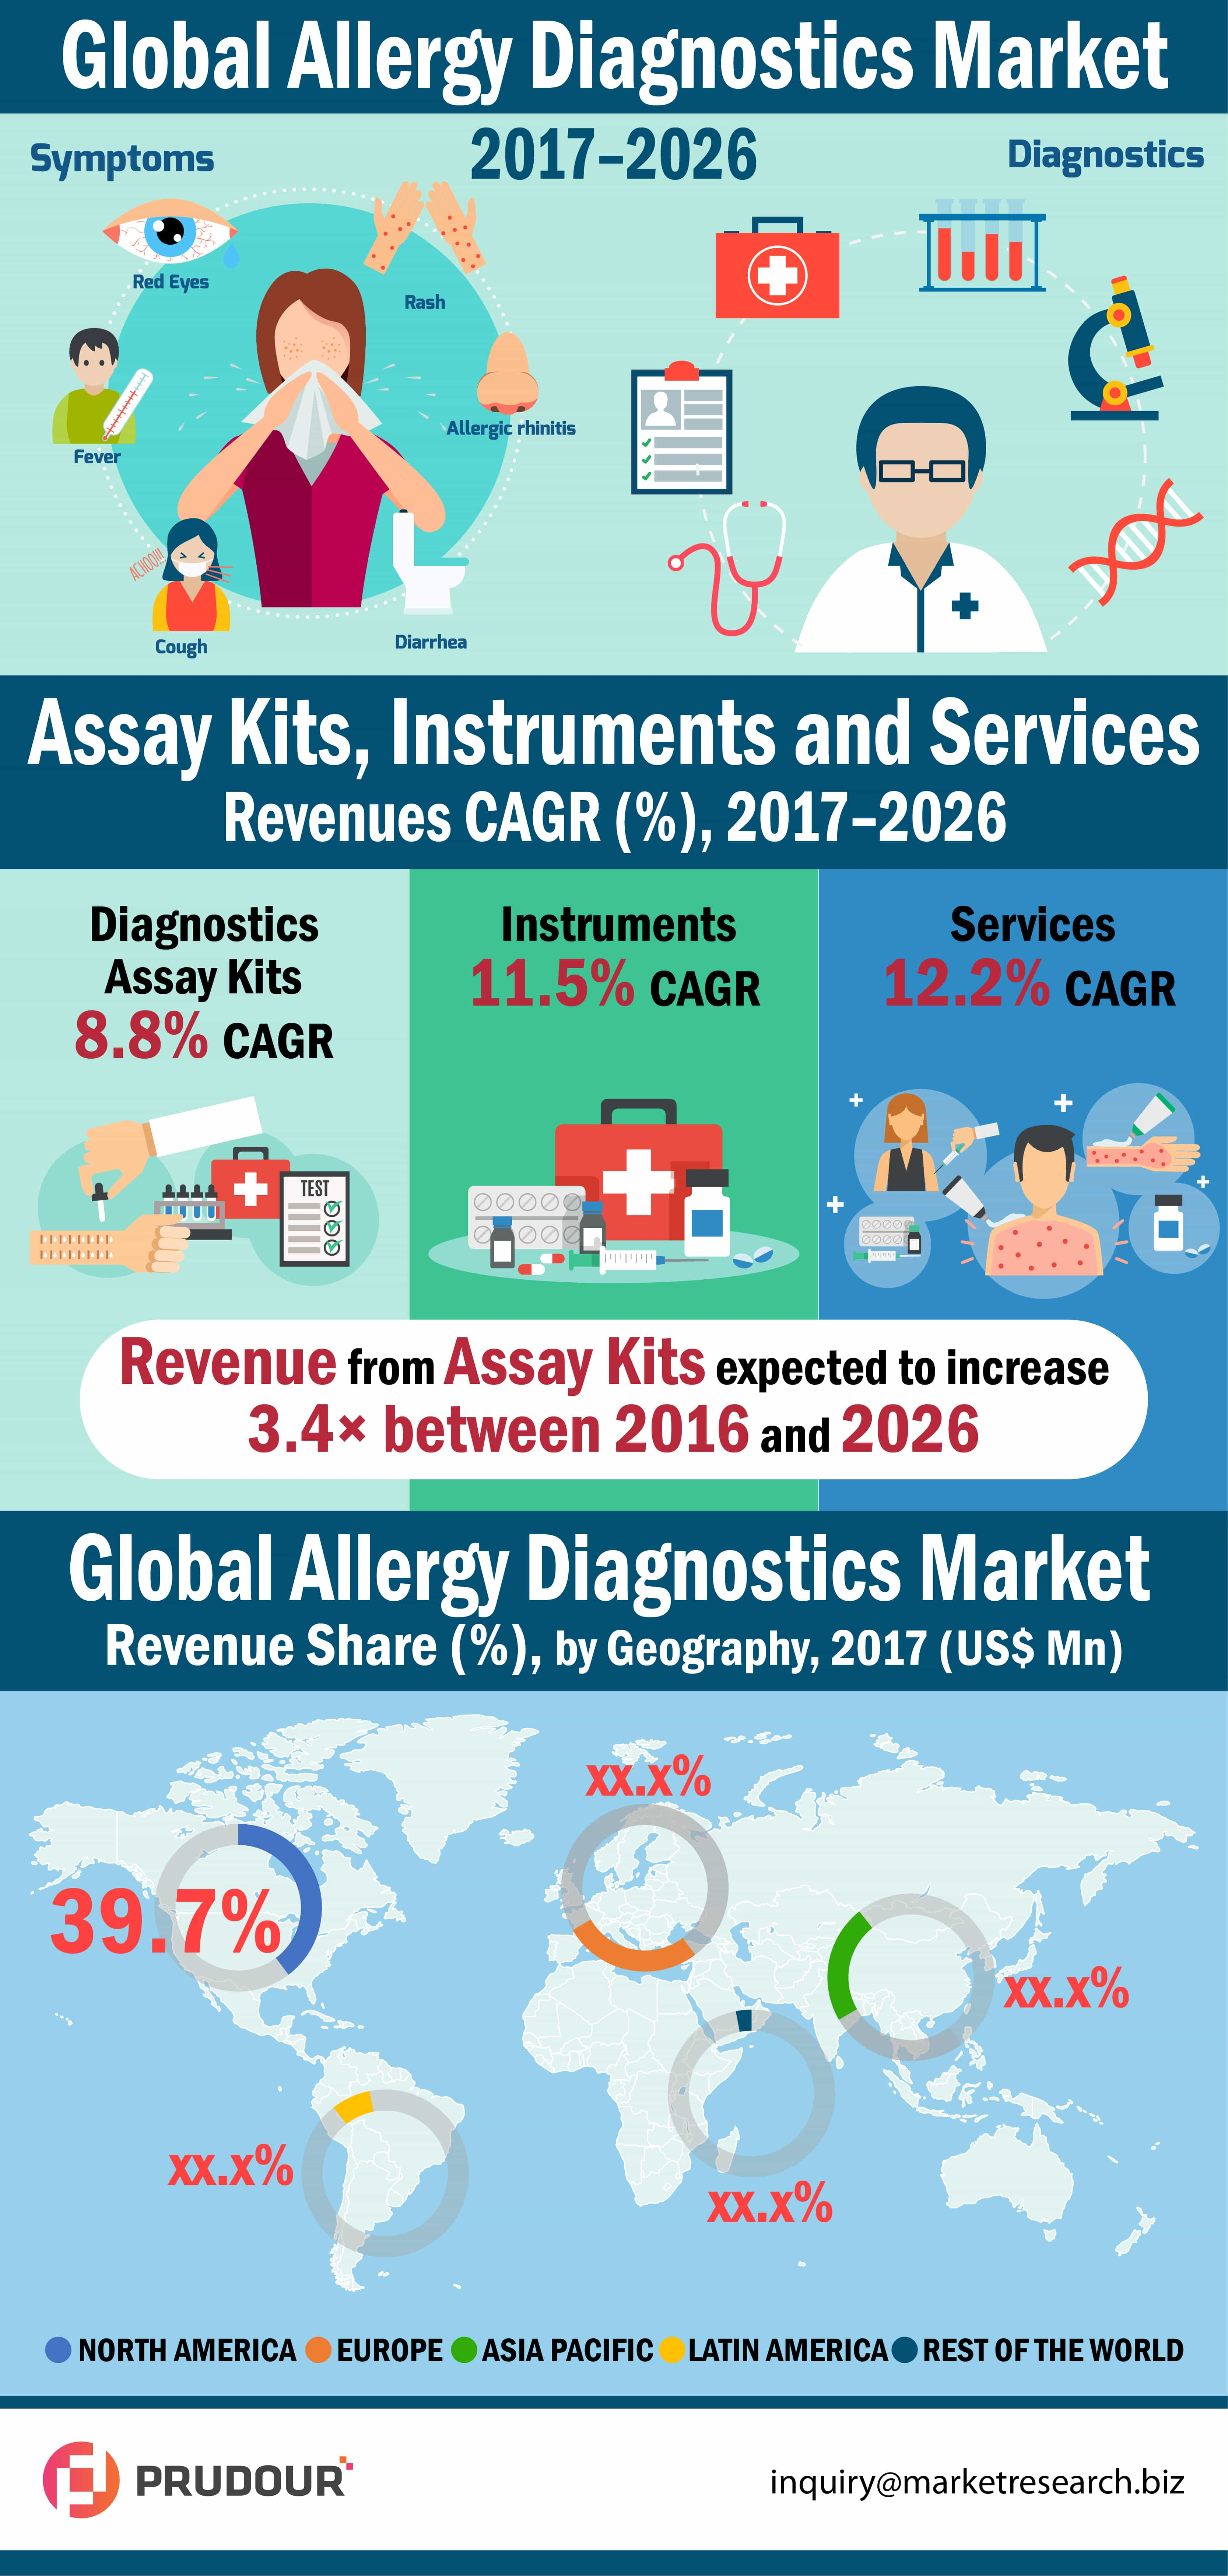 North America Allergy Diagnostics Market is Growing at 39.7% CAGR During 2016-2026